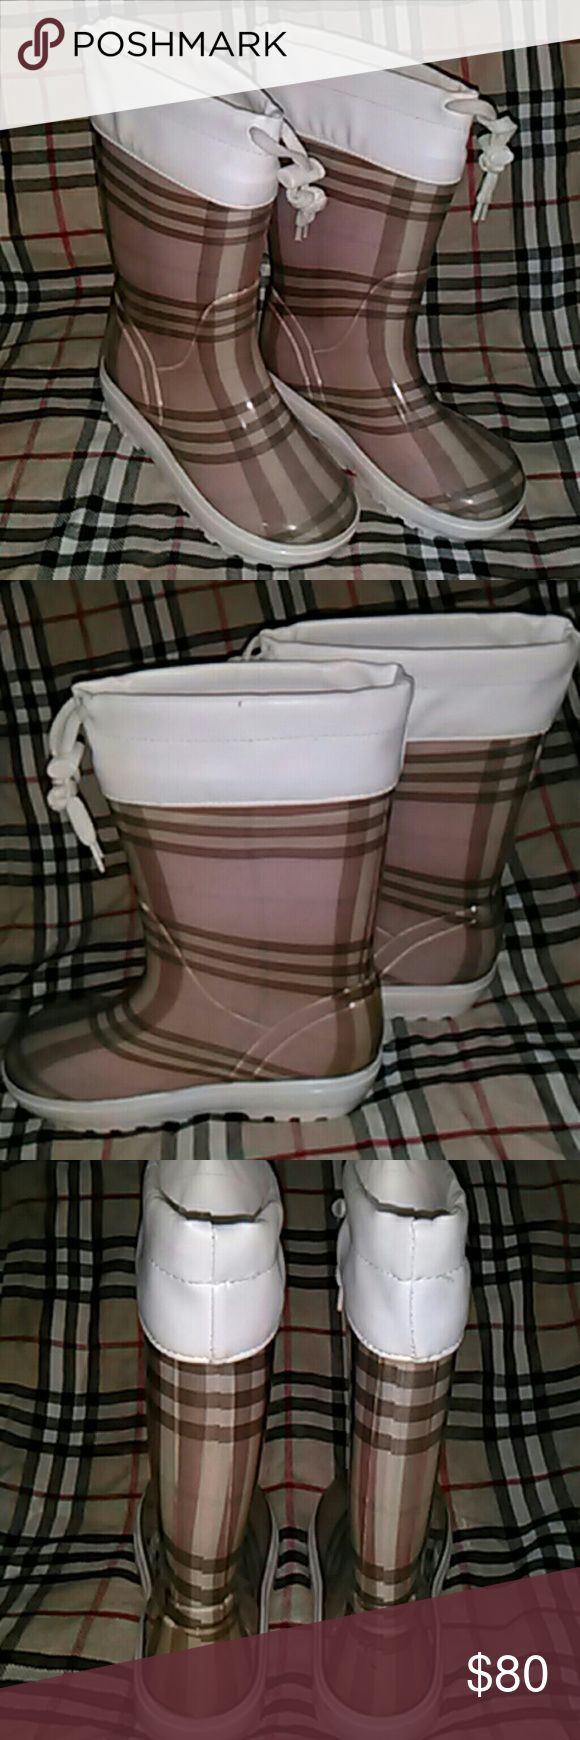 Authentic kids Burberry boots Authentic Burberry kids boots made in Italy Burberry Shoes Rain & Snow Boots